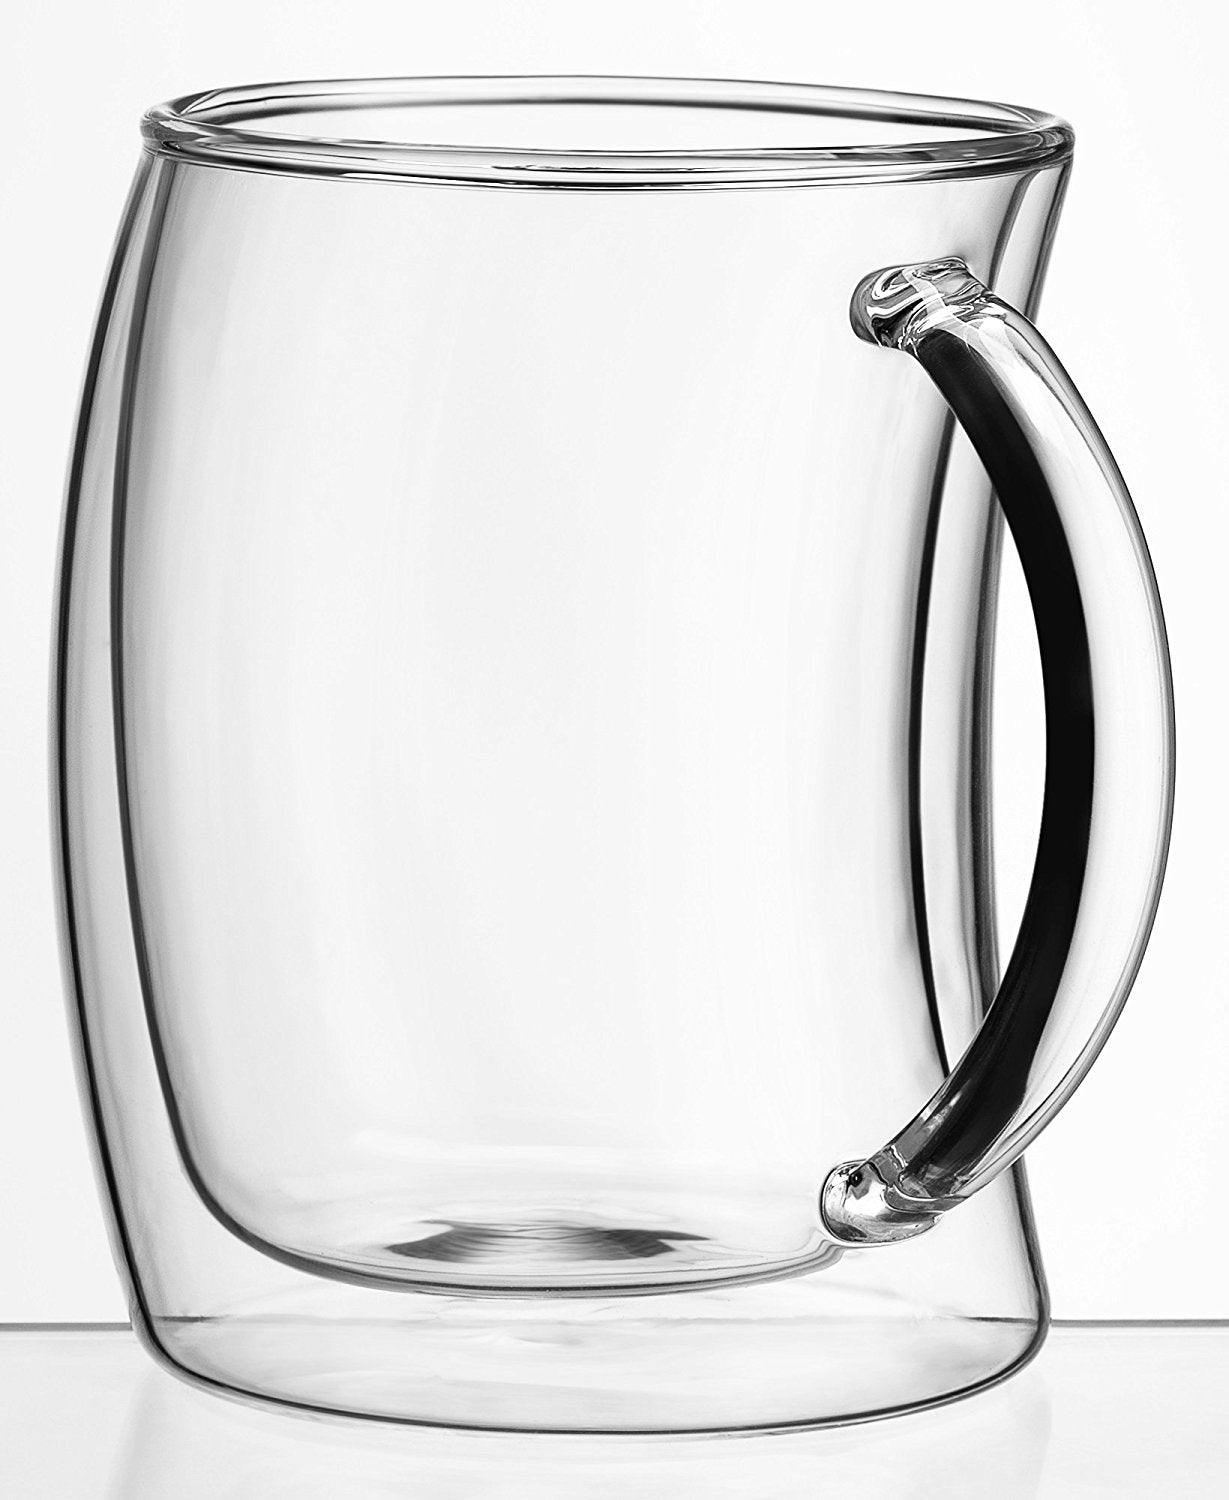 Caleo Double Wall Glasses 13 oz